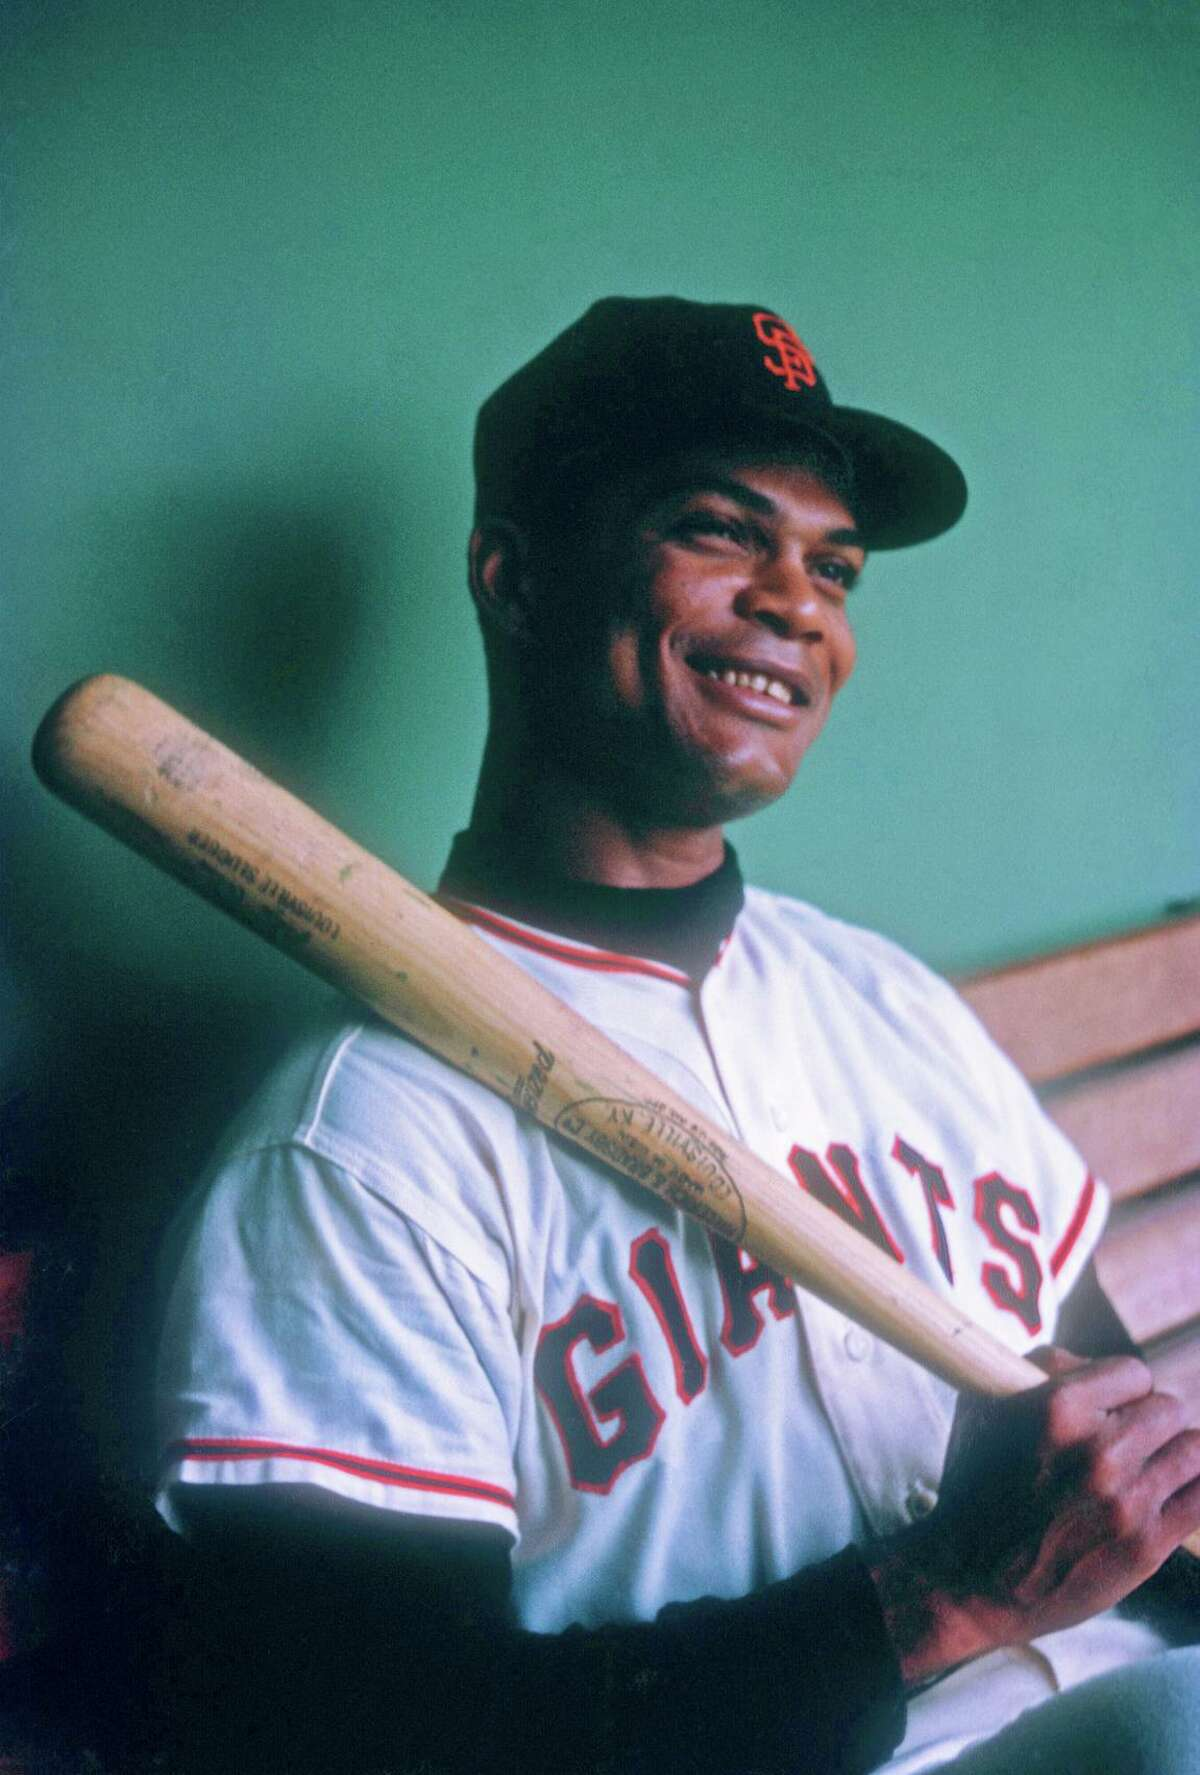 SAN FRANCISCO, CA - 1960: Felipe Alou #23 of the San Francisco Giants poses for a portrait while sitting in the dugout before an MLB game circa 1960 at Candlestick Park in San Francisco, California. (Photo by Hy Peskin/Getty Images)